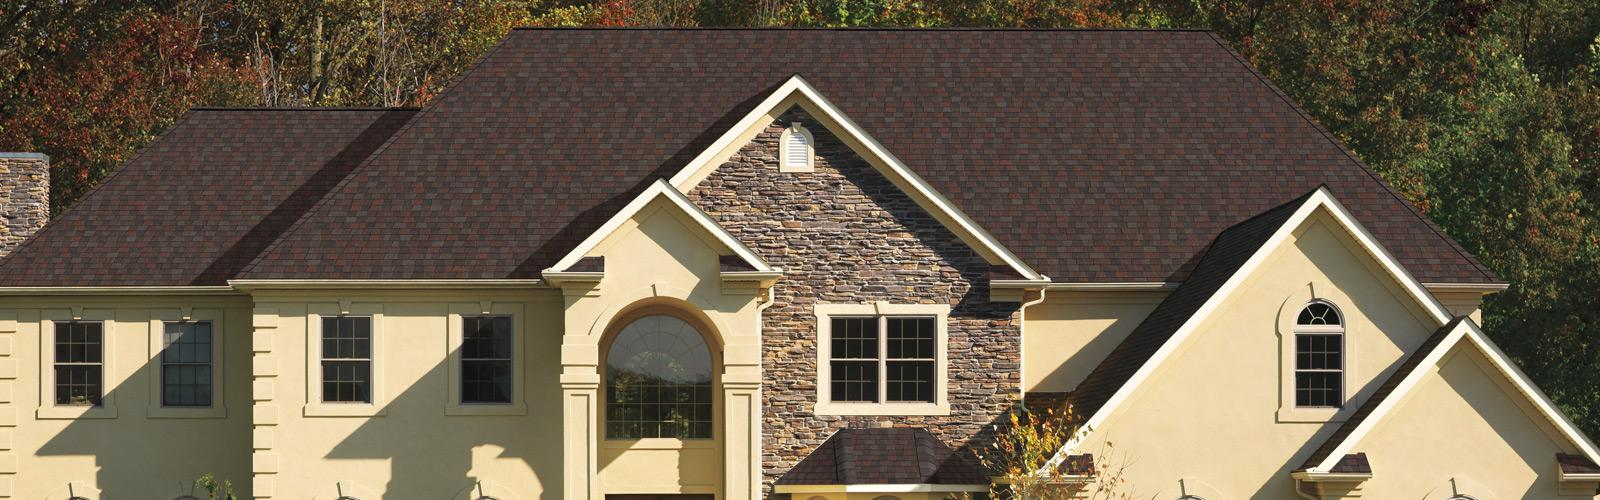 Merritt Roofing and Construction Images